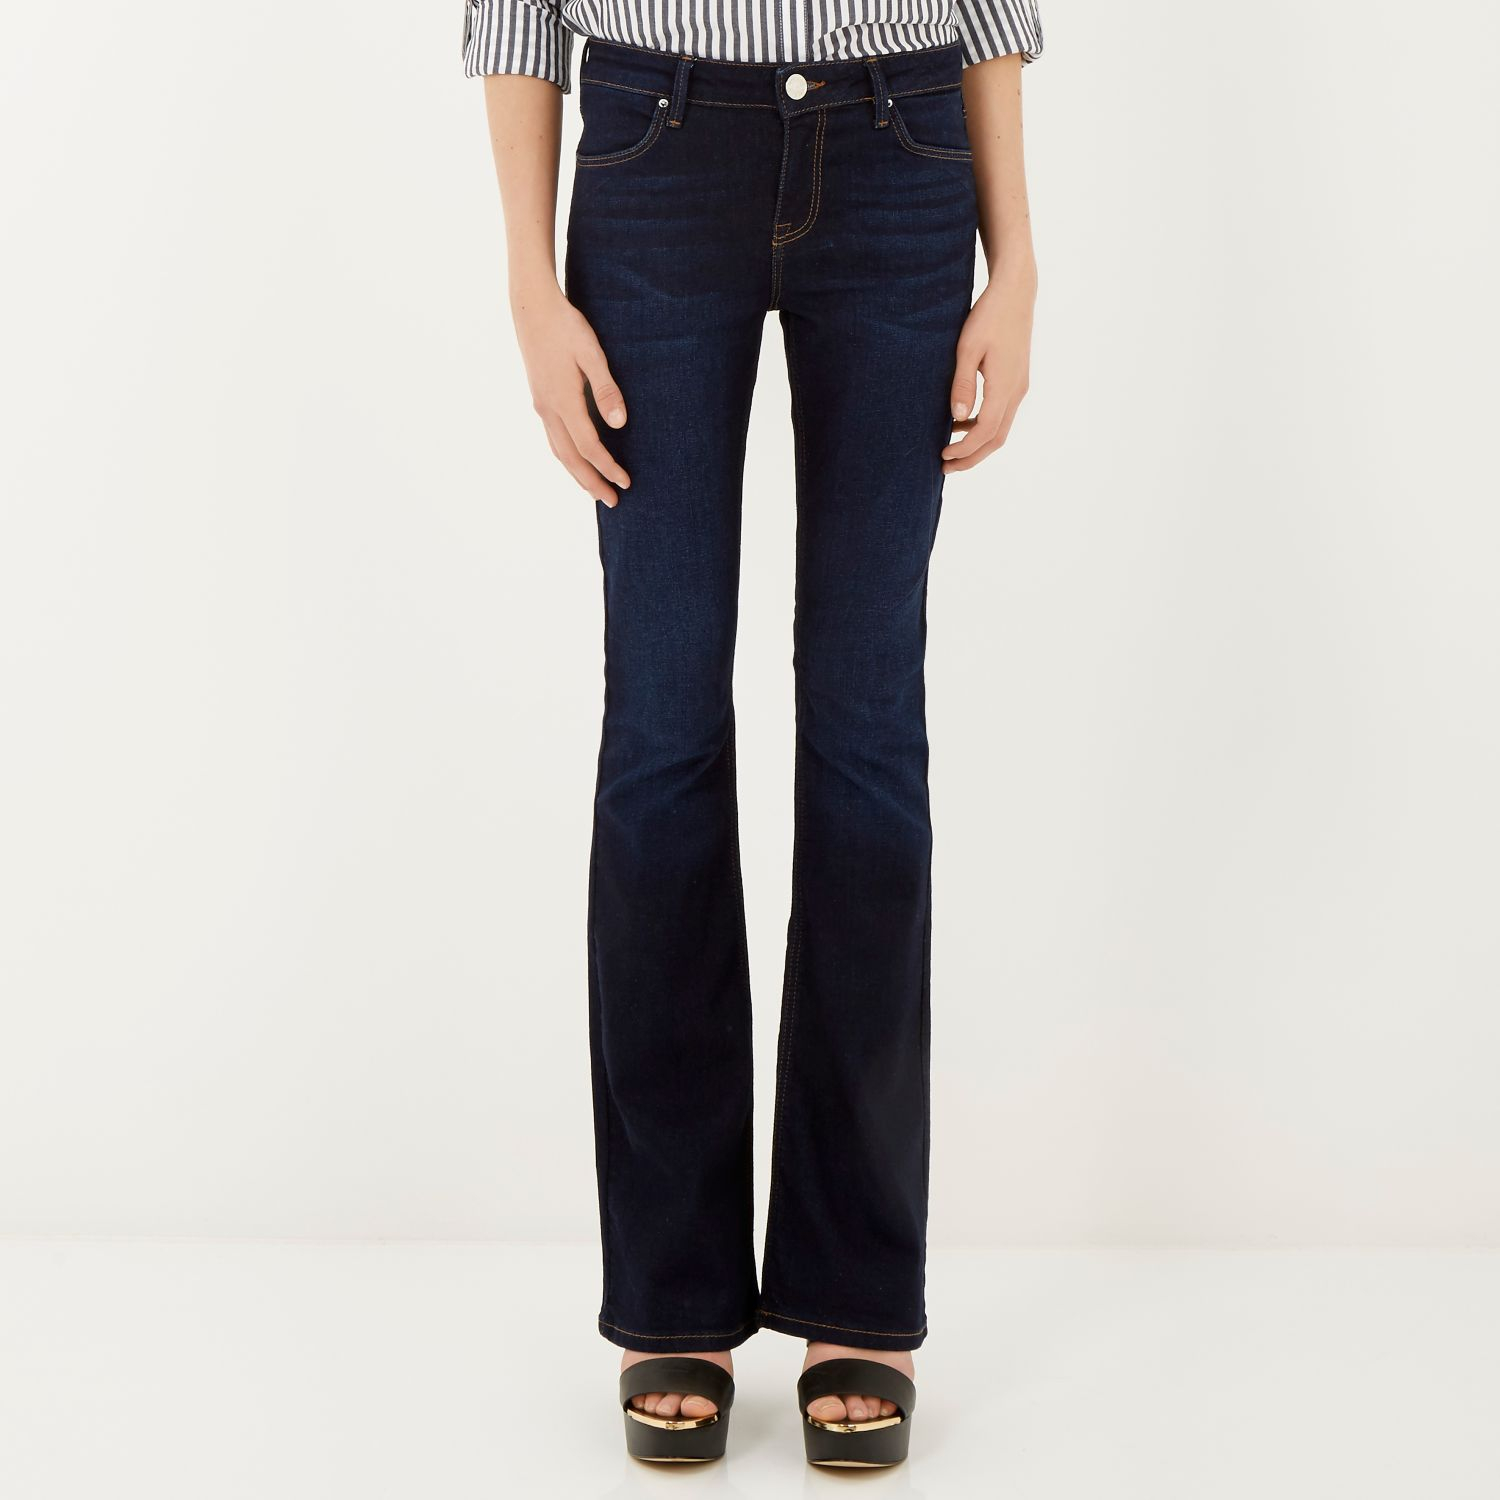 River island Dark Wash Brooke Flare Jeans in Blue | Lyst